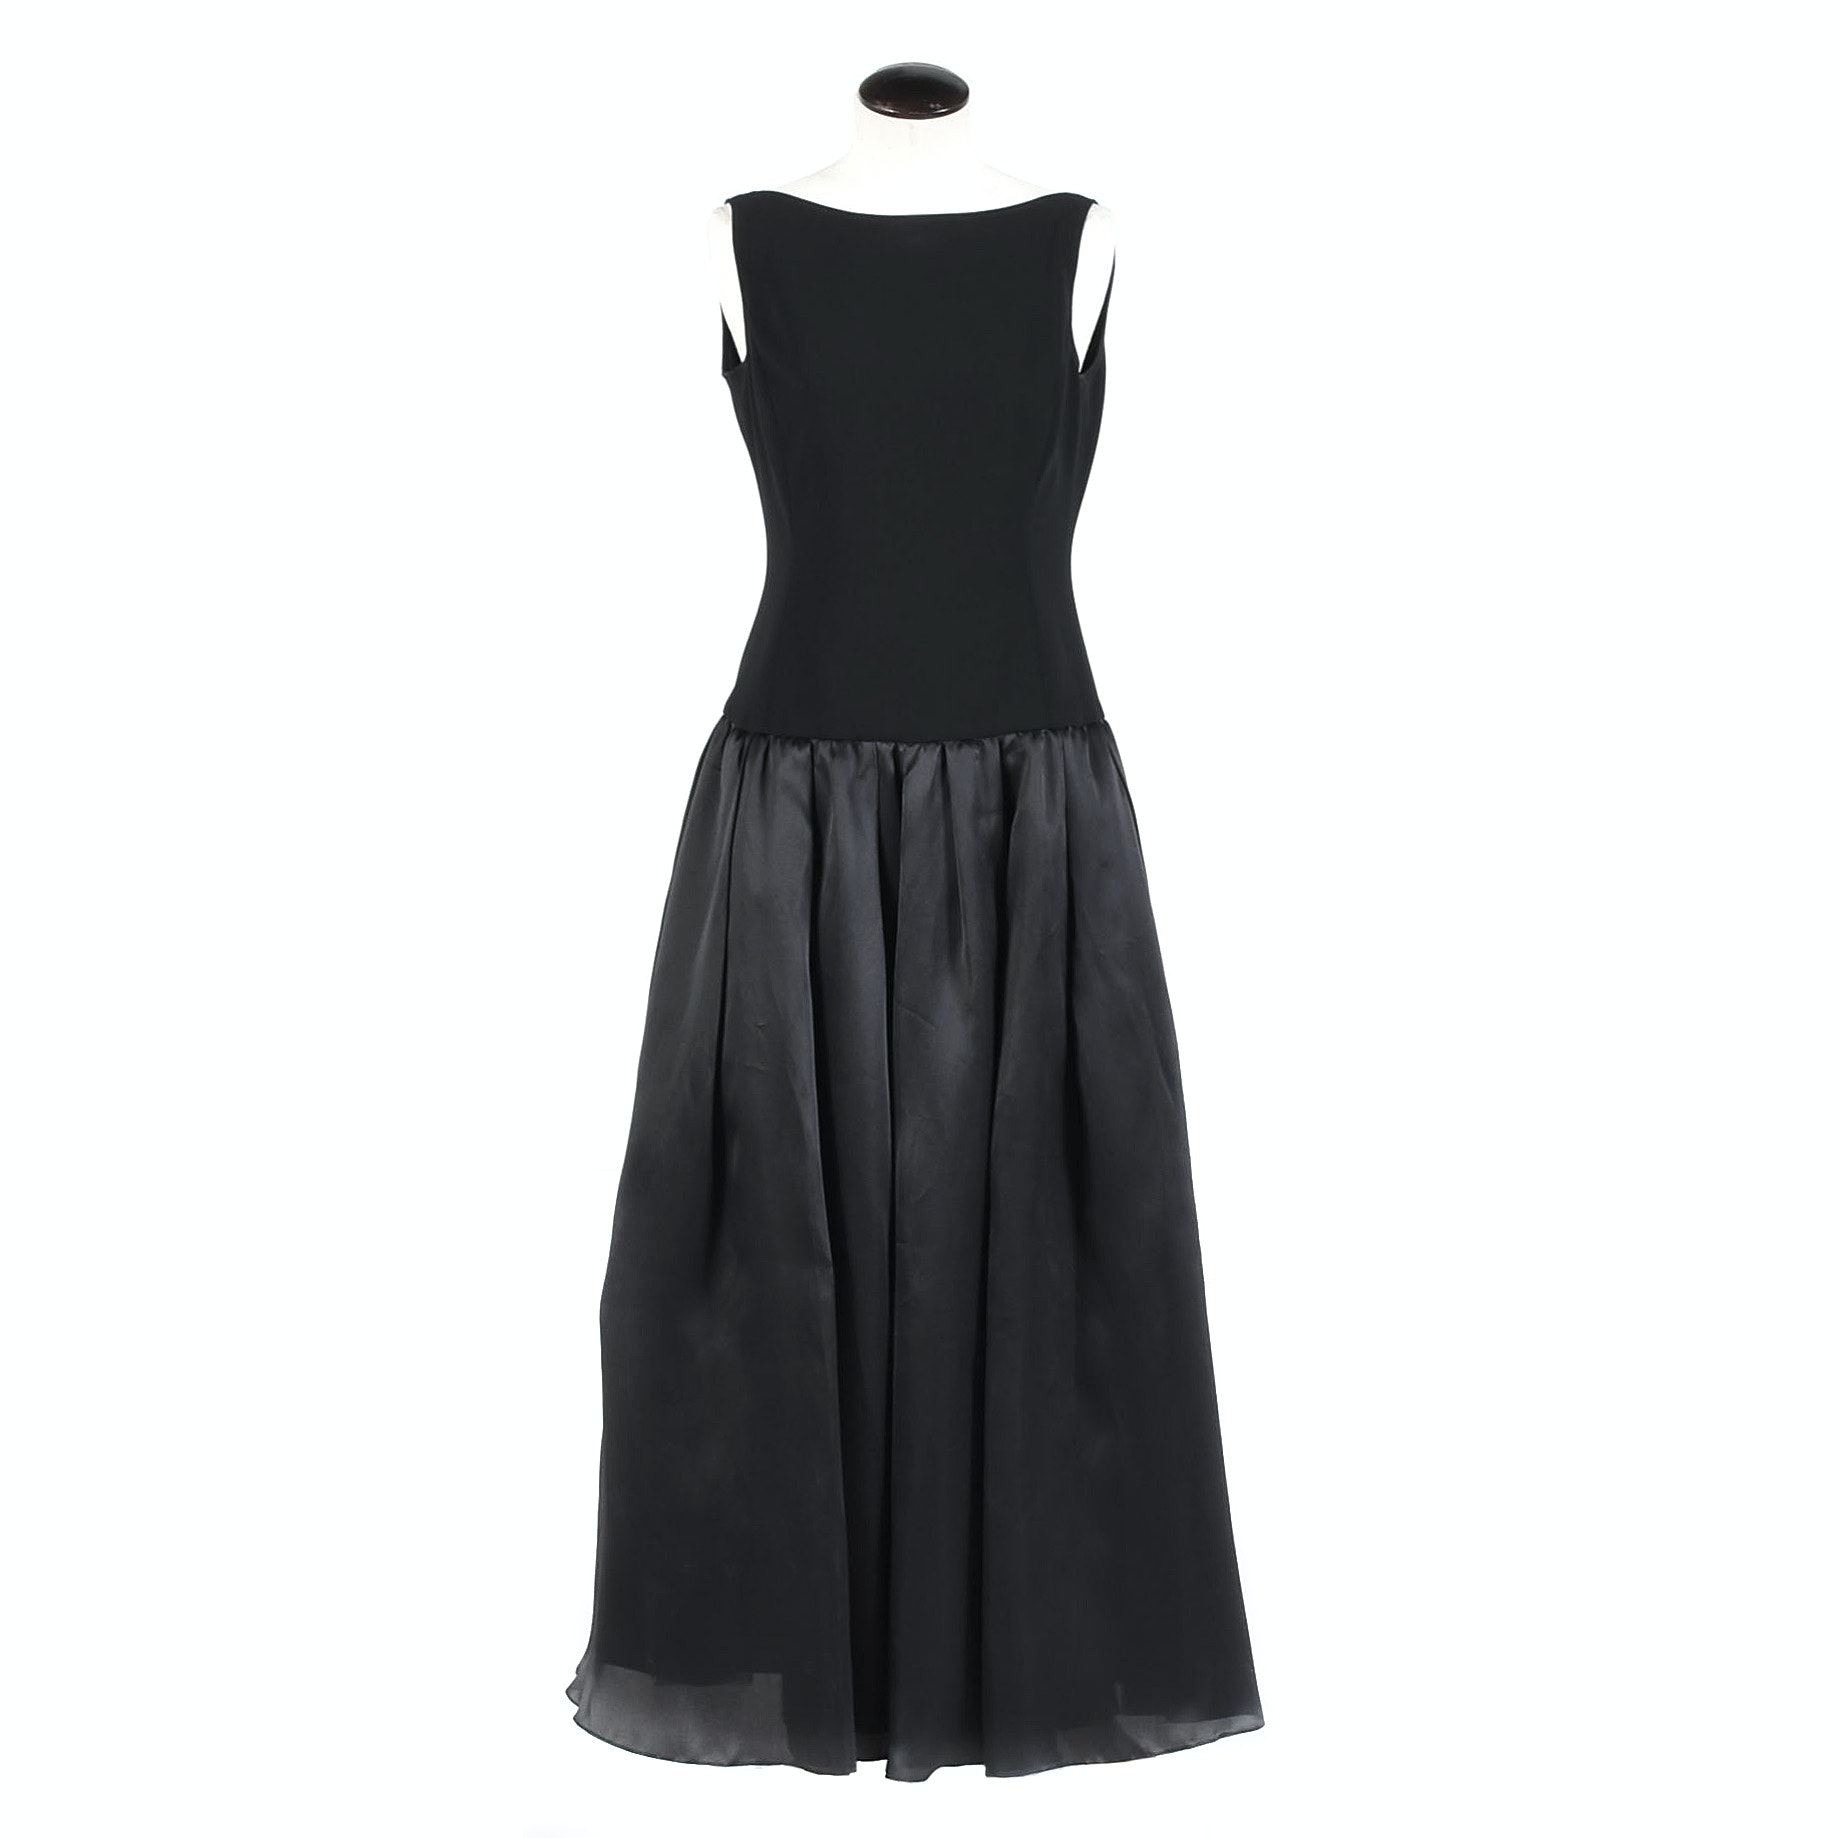 St. John Couture Black Sleeveless Gown